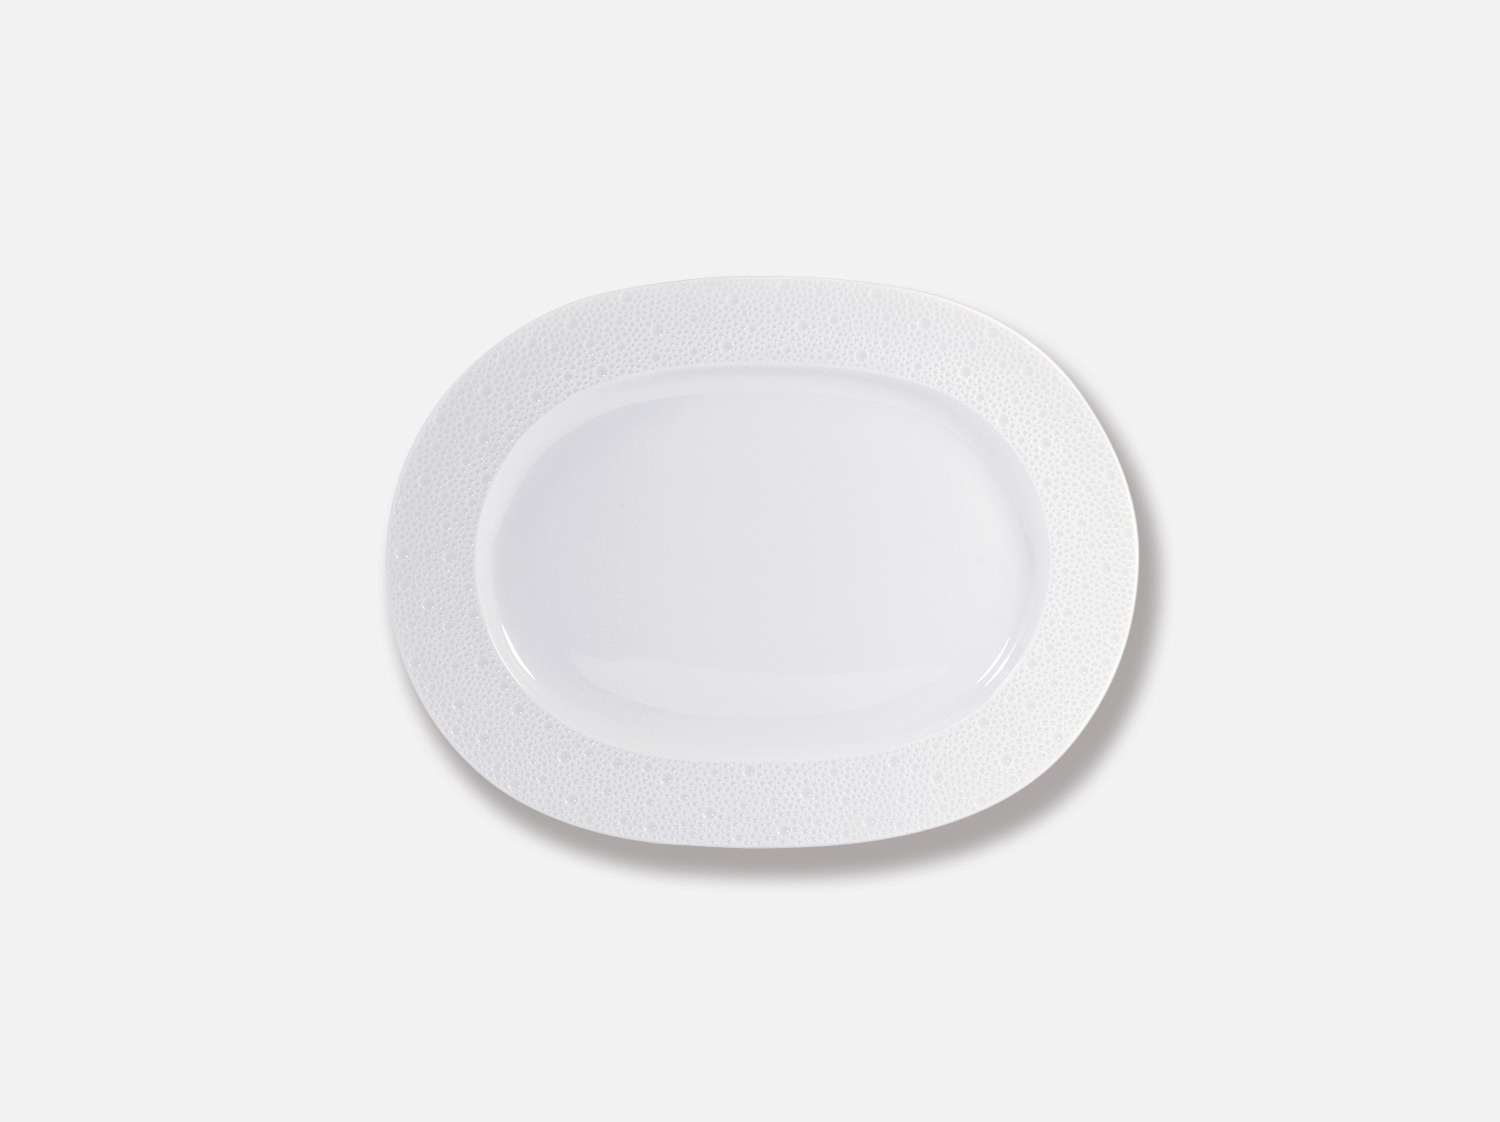 Assiette ovale 30 cm en porcelaine de la collection Ecume Bernardaud